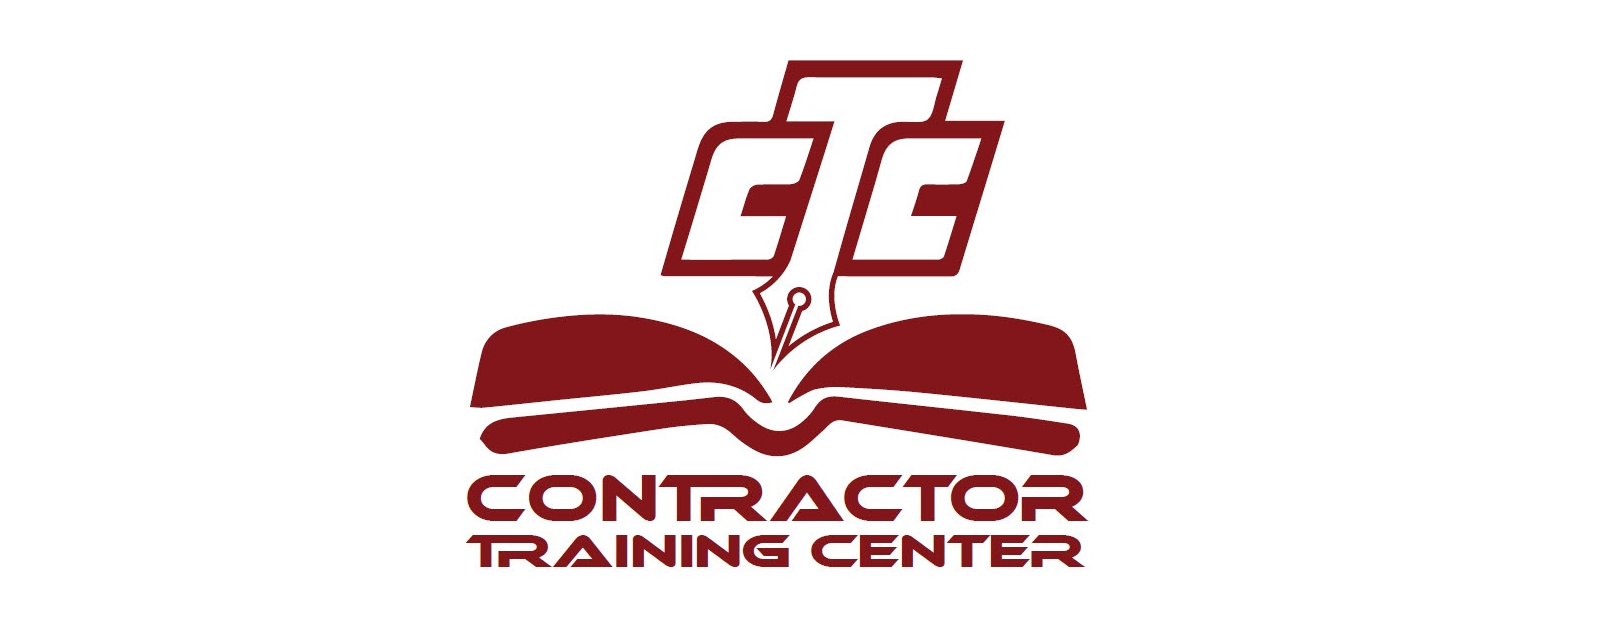 Contractor Training Center reviews | Educational Services at 1100 Welborne Dr - Richmond VA